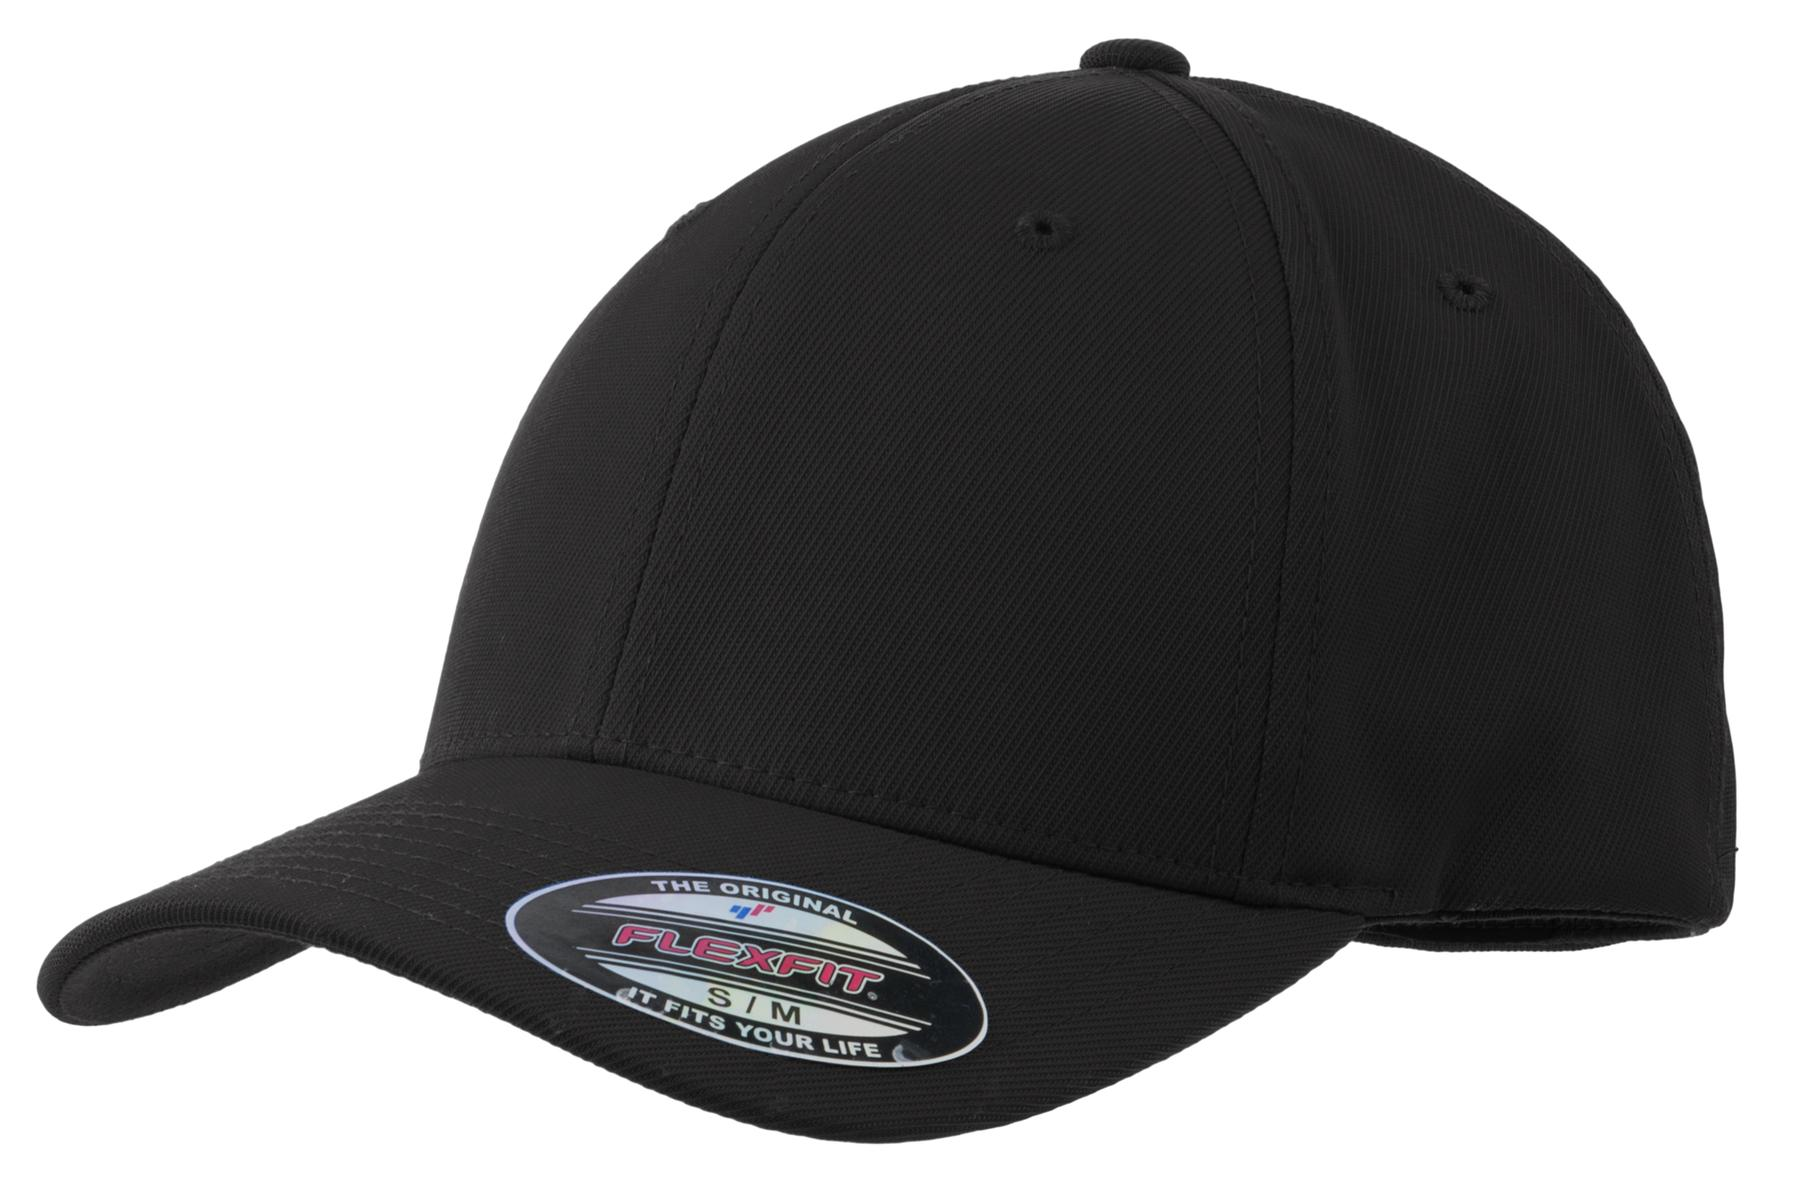 Sport-Tek ®  Flexfit ®  Performance Solid Cap. STC17 - Black